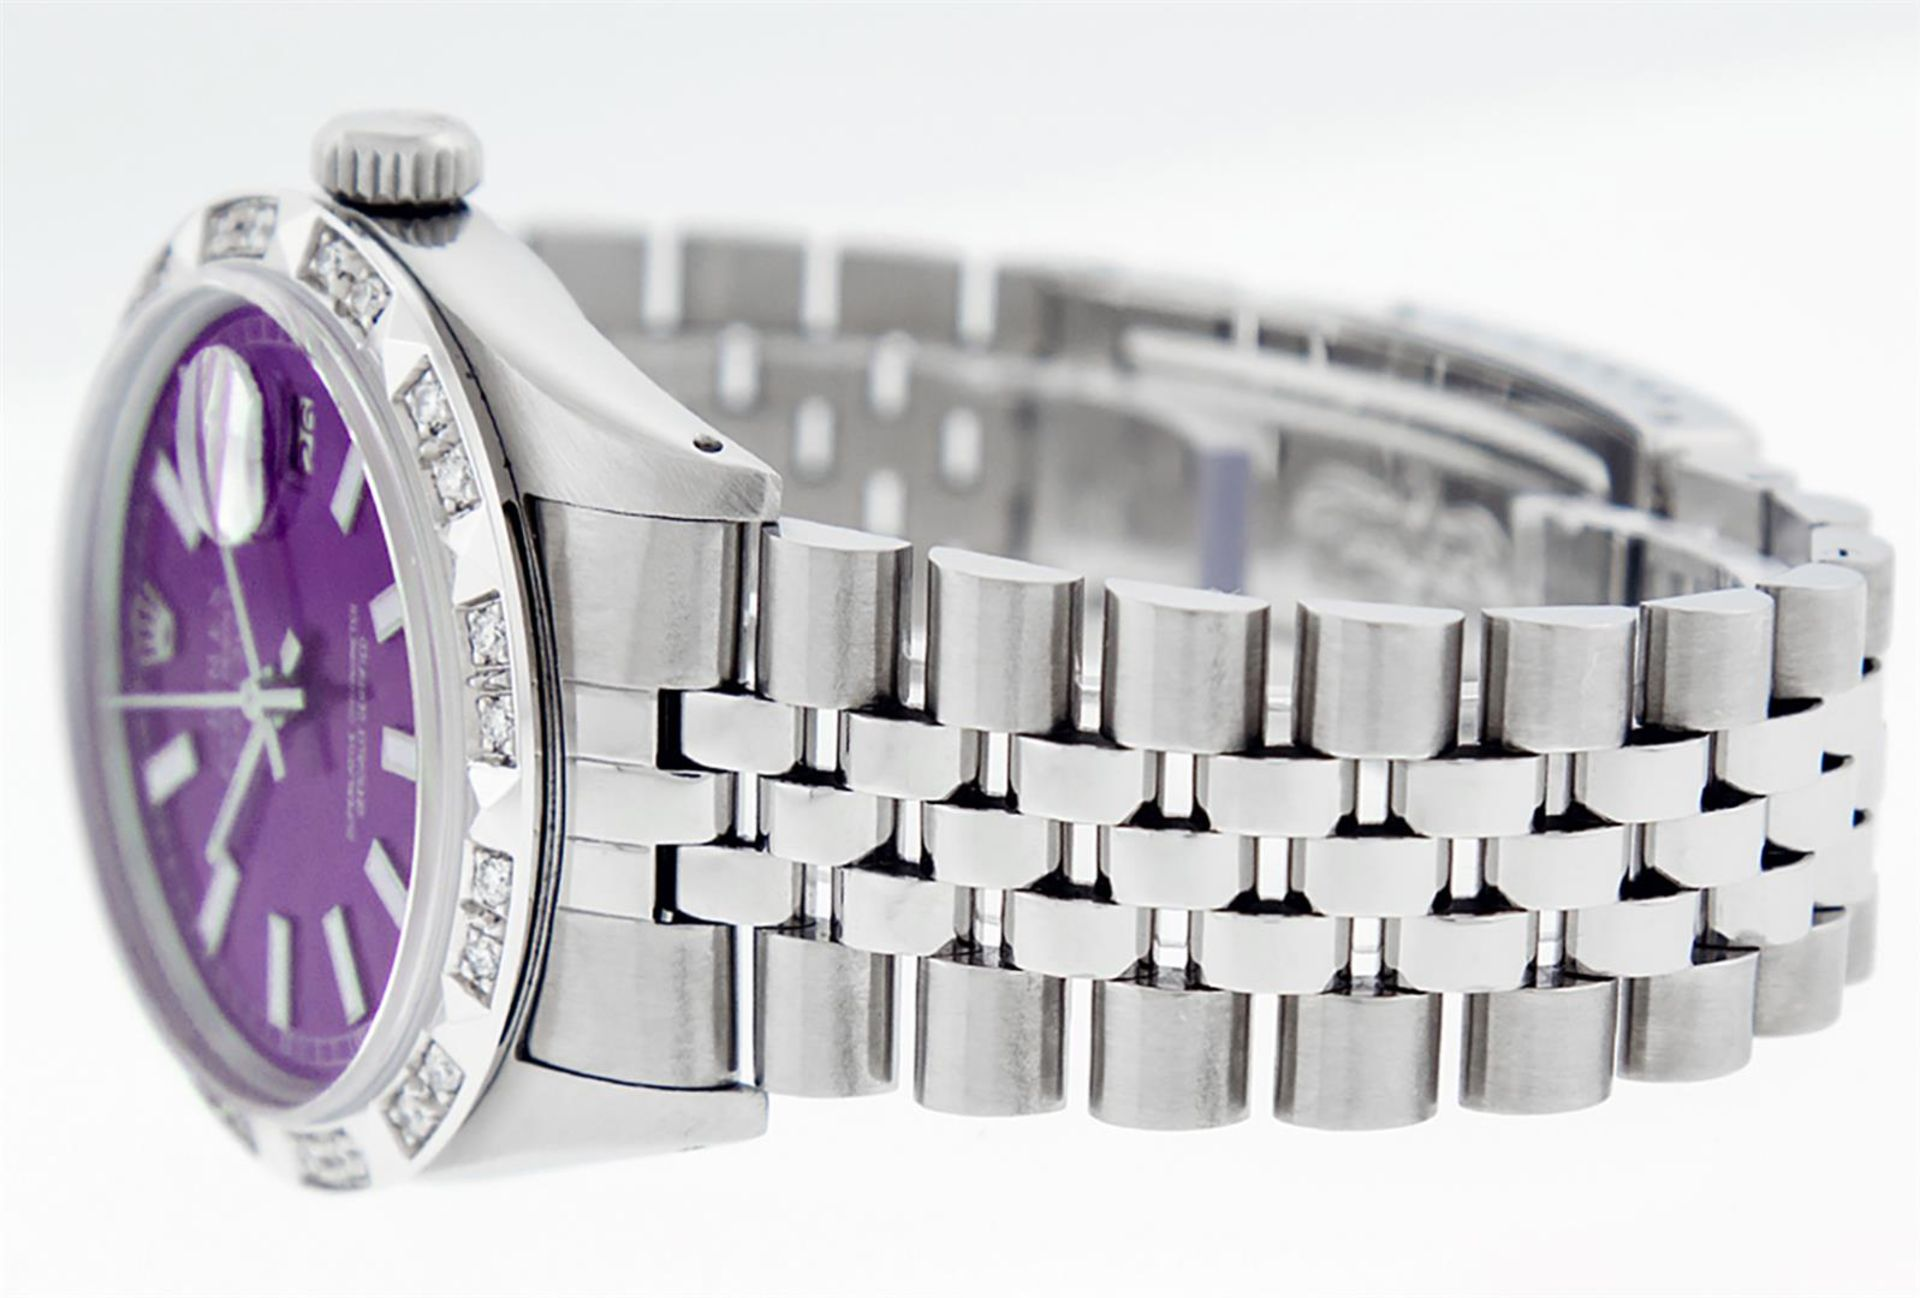 Rolex Mens Stainless Steel 36MM Purple Index Pyramid Diamond Datejust Wristwatch - Image 7 of 9